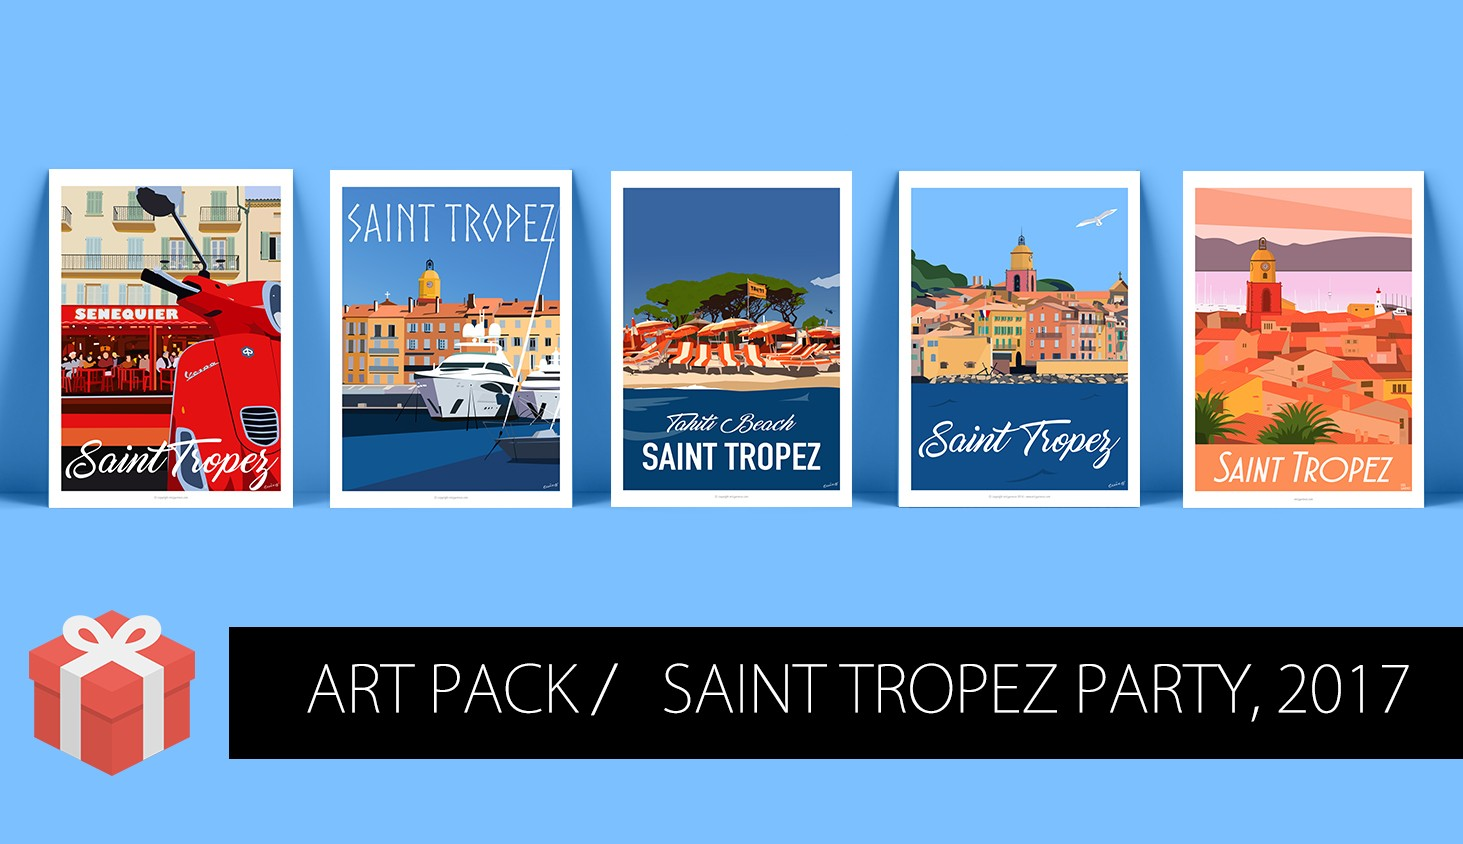 Art Pack Saint Tropez, 2017